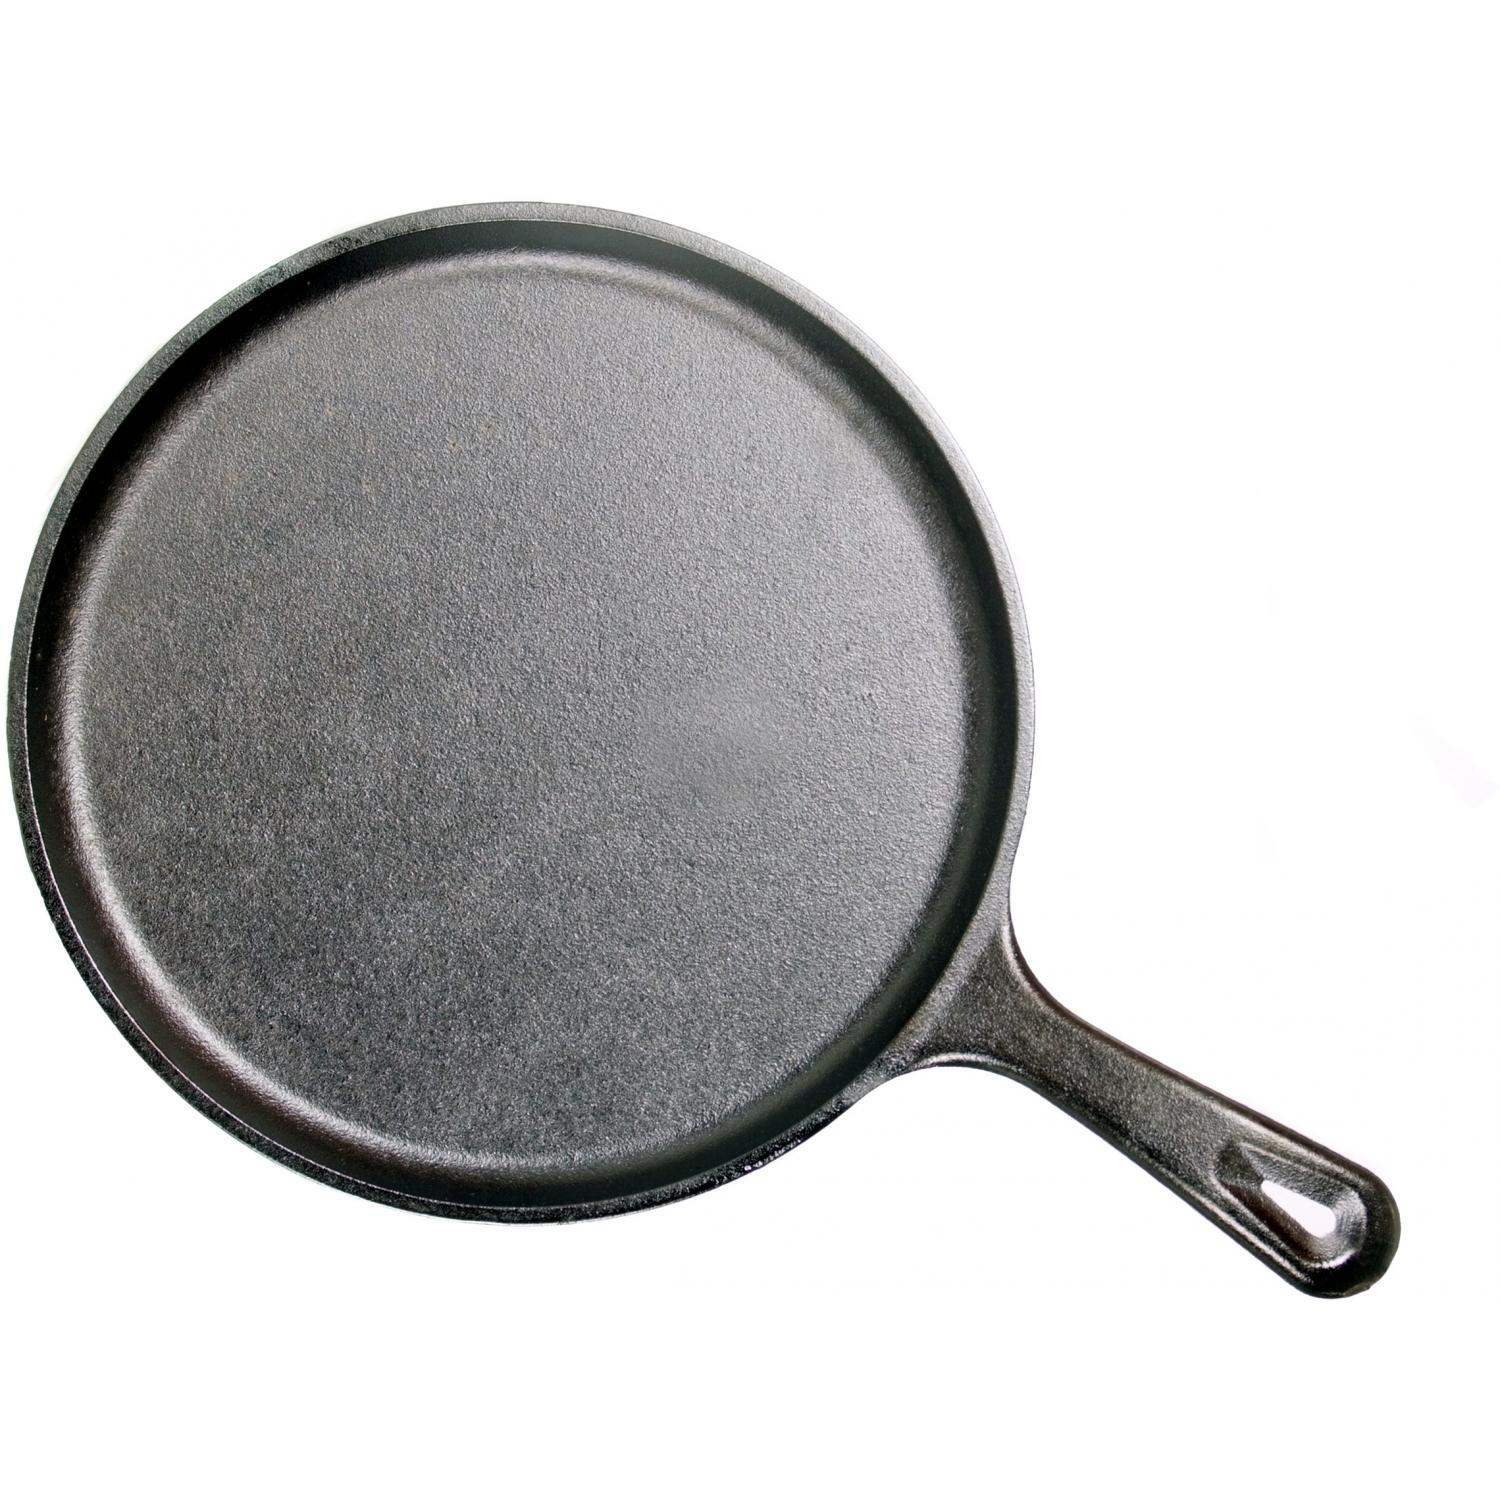 Lodge Cast Iron Round Griddle With Handle Seasoned - L9OG3